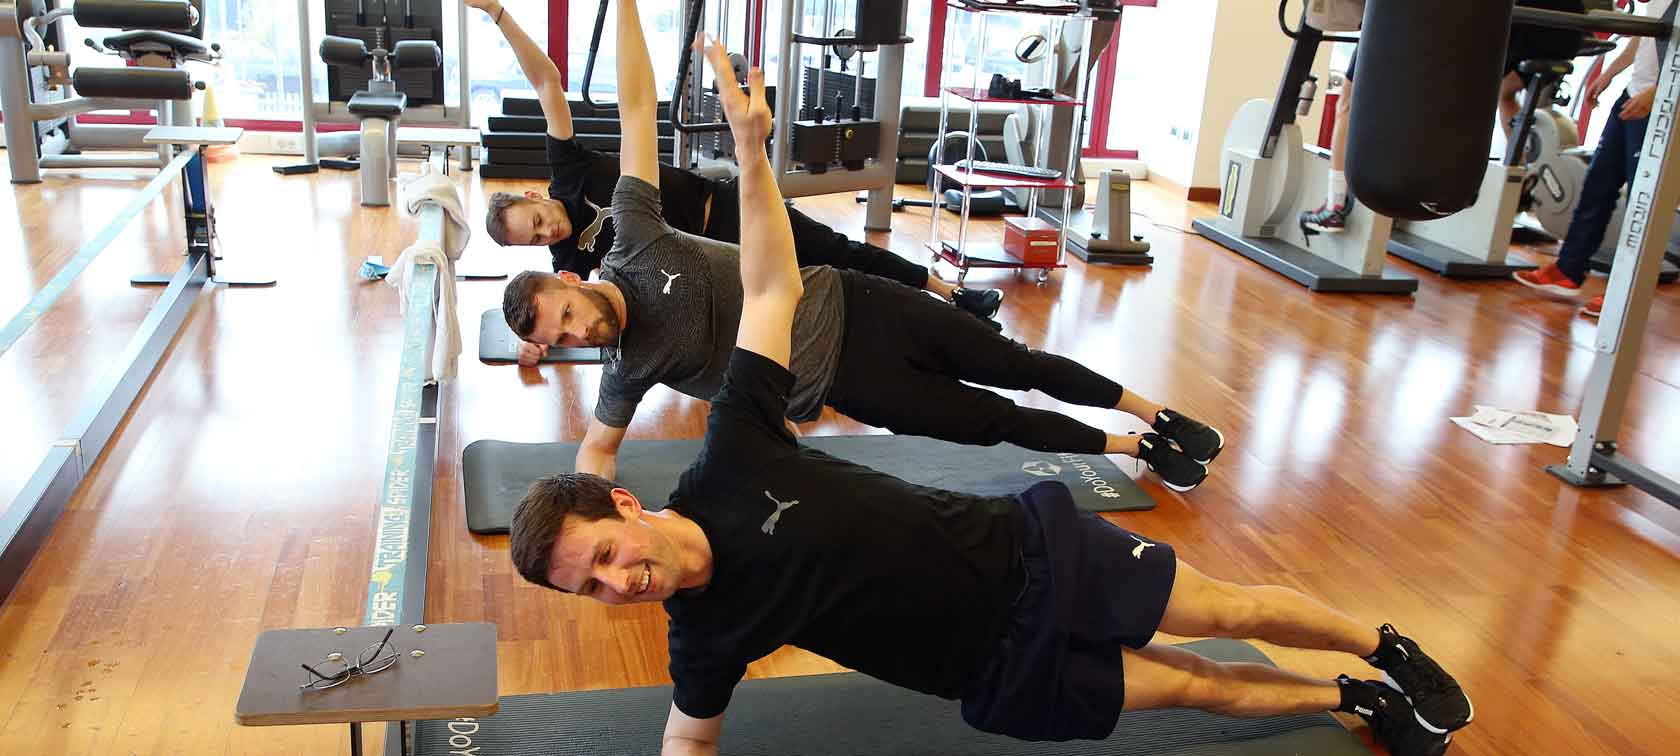 WEC, Formel E Fitness-Camp